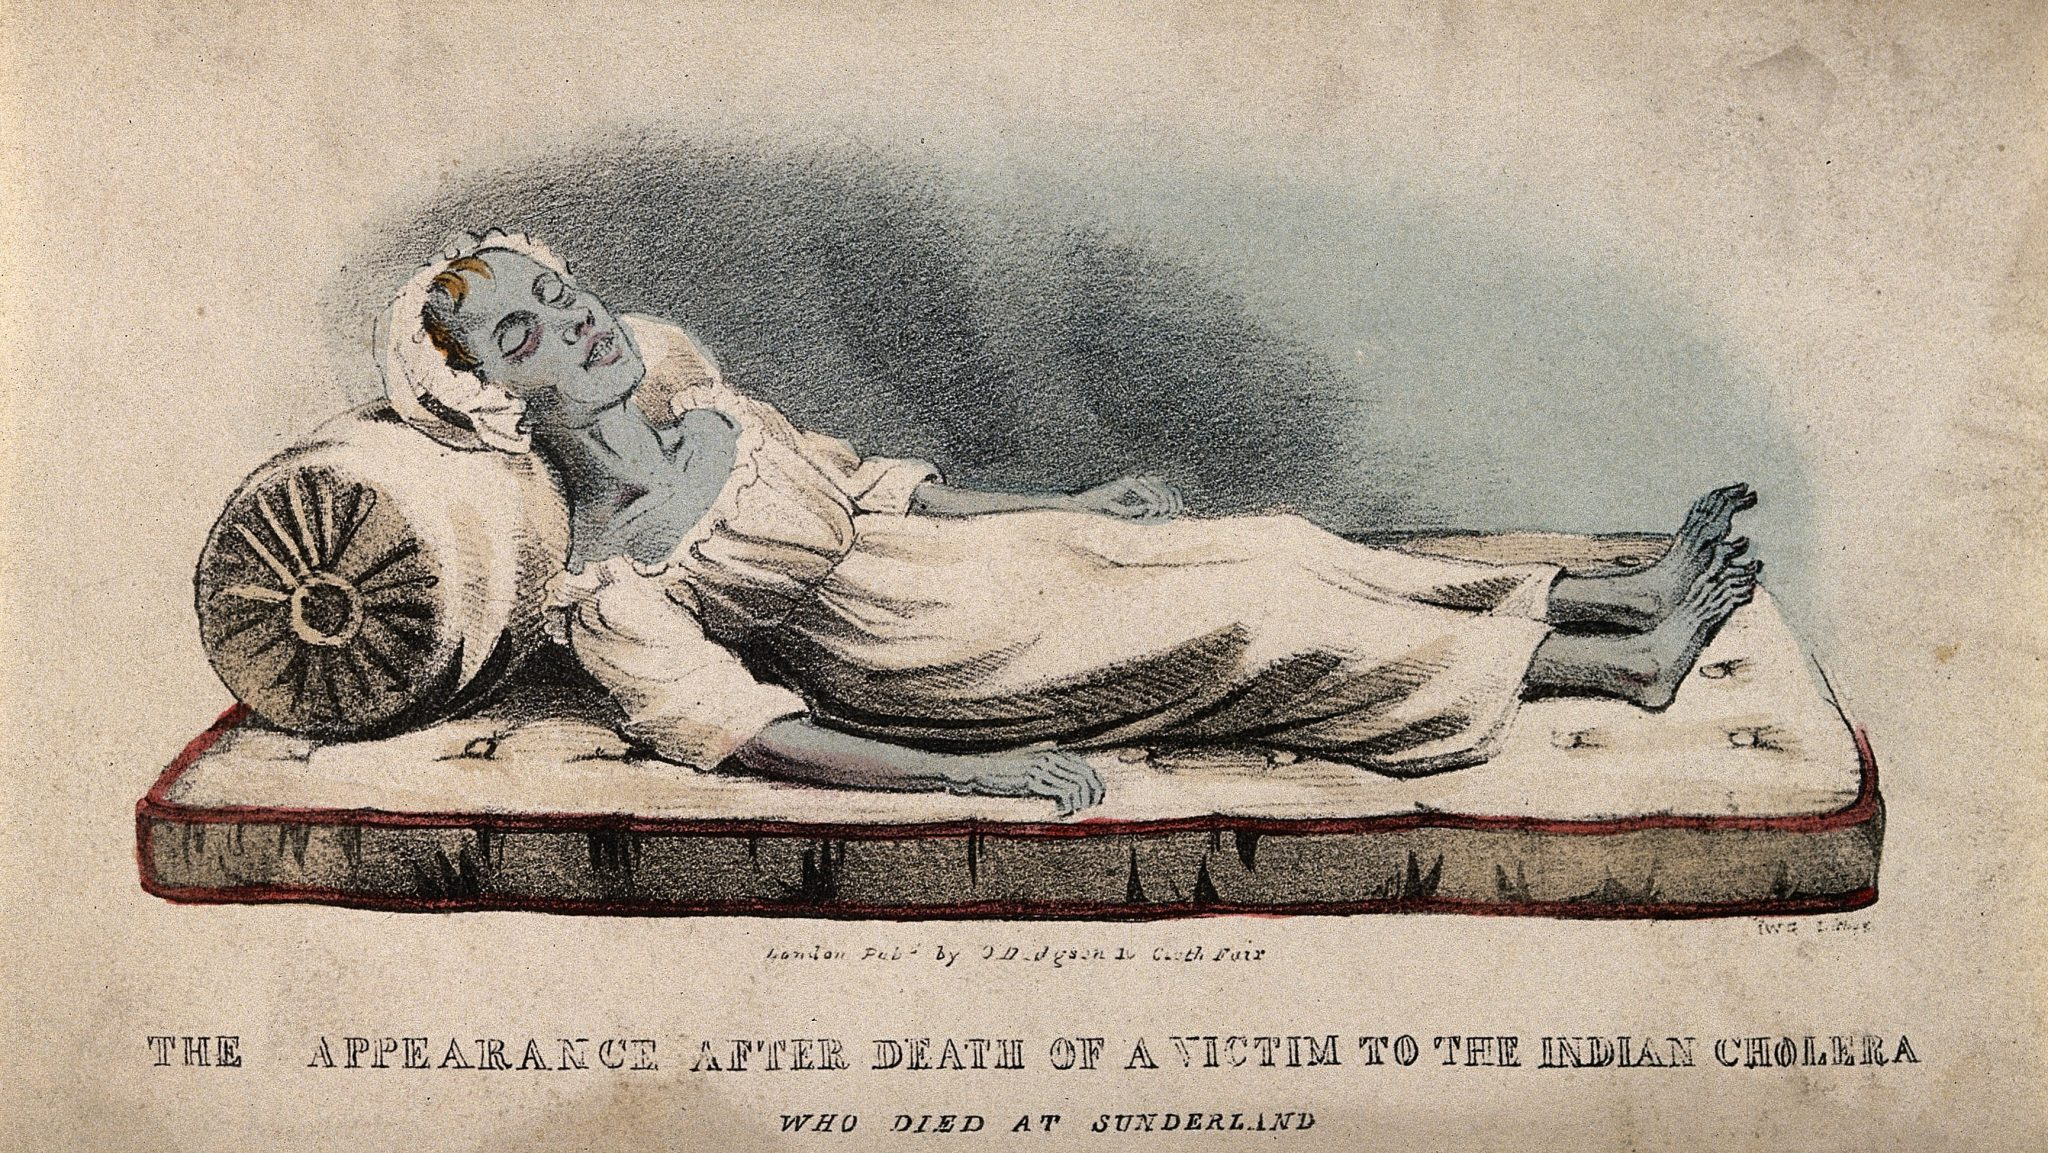 A dead victim of cholera at Sunderland in 1832.